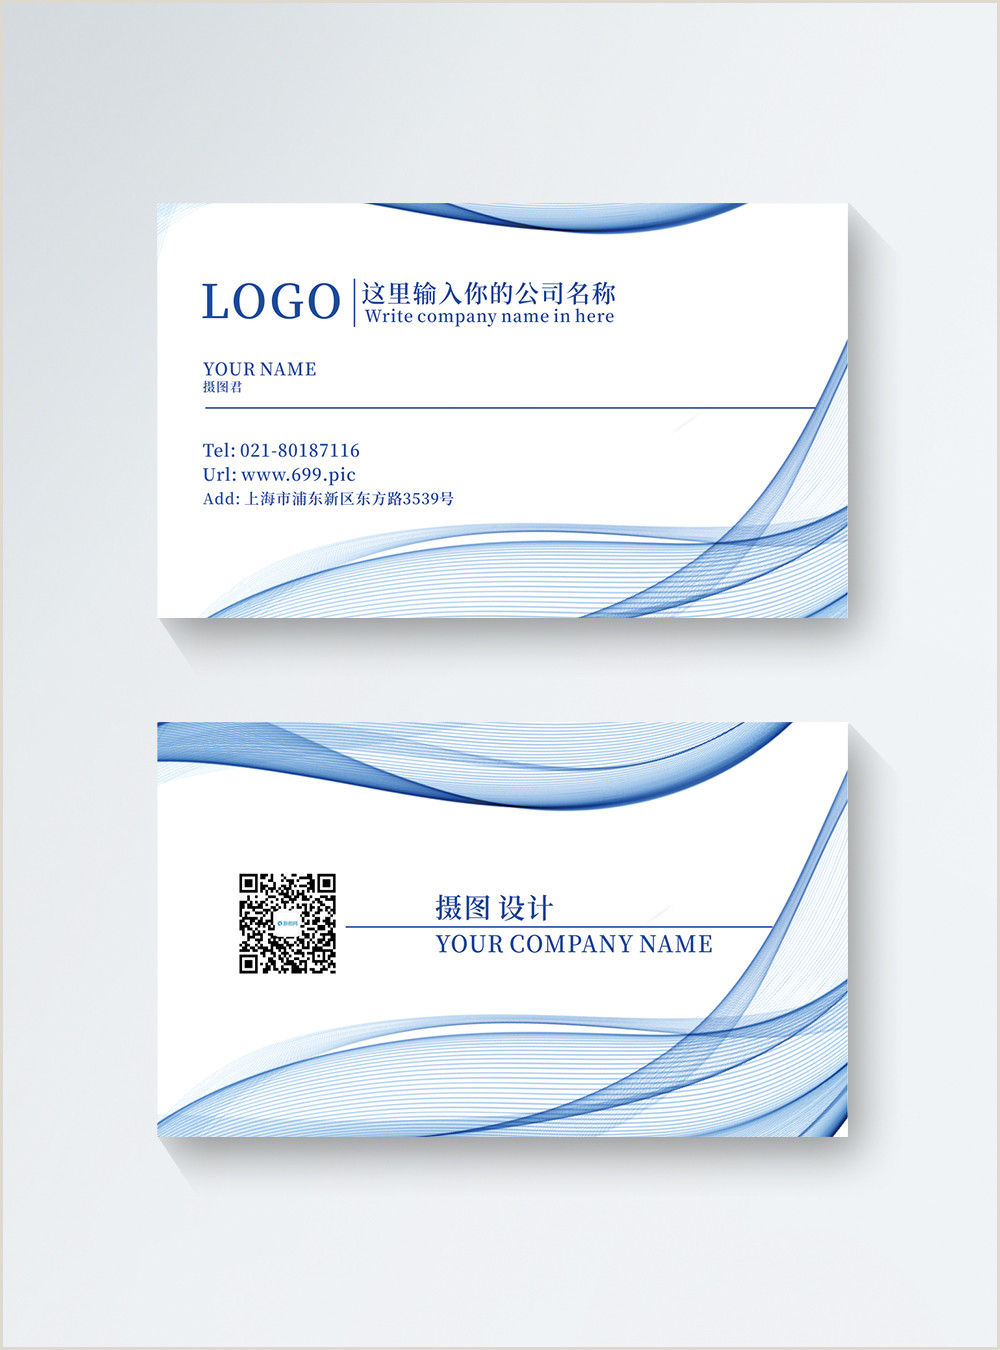 Simple Business Card Template Simple Business Personal Business Card Template